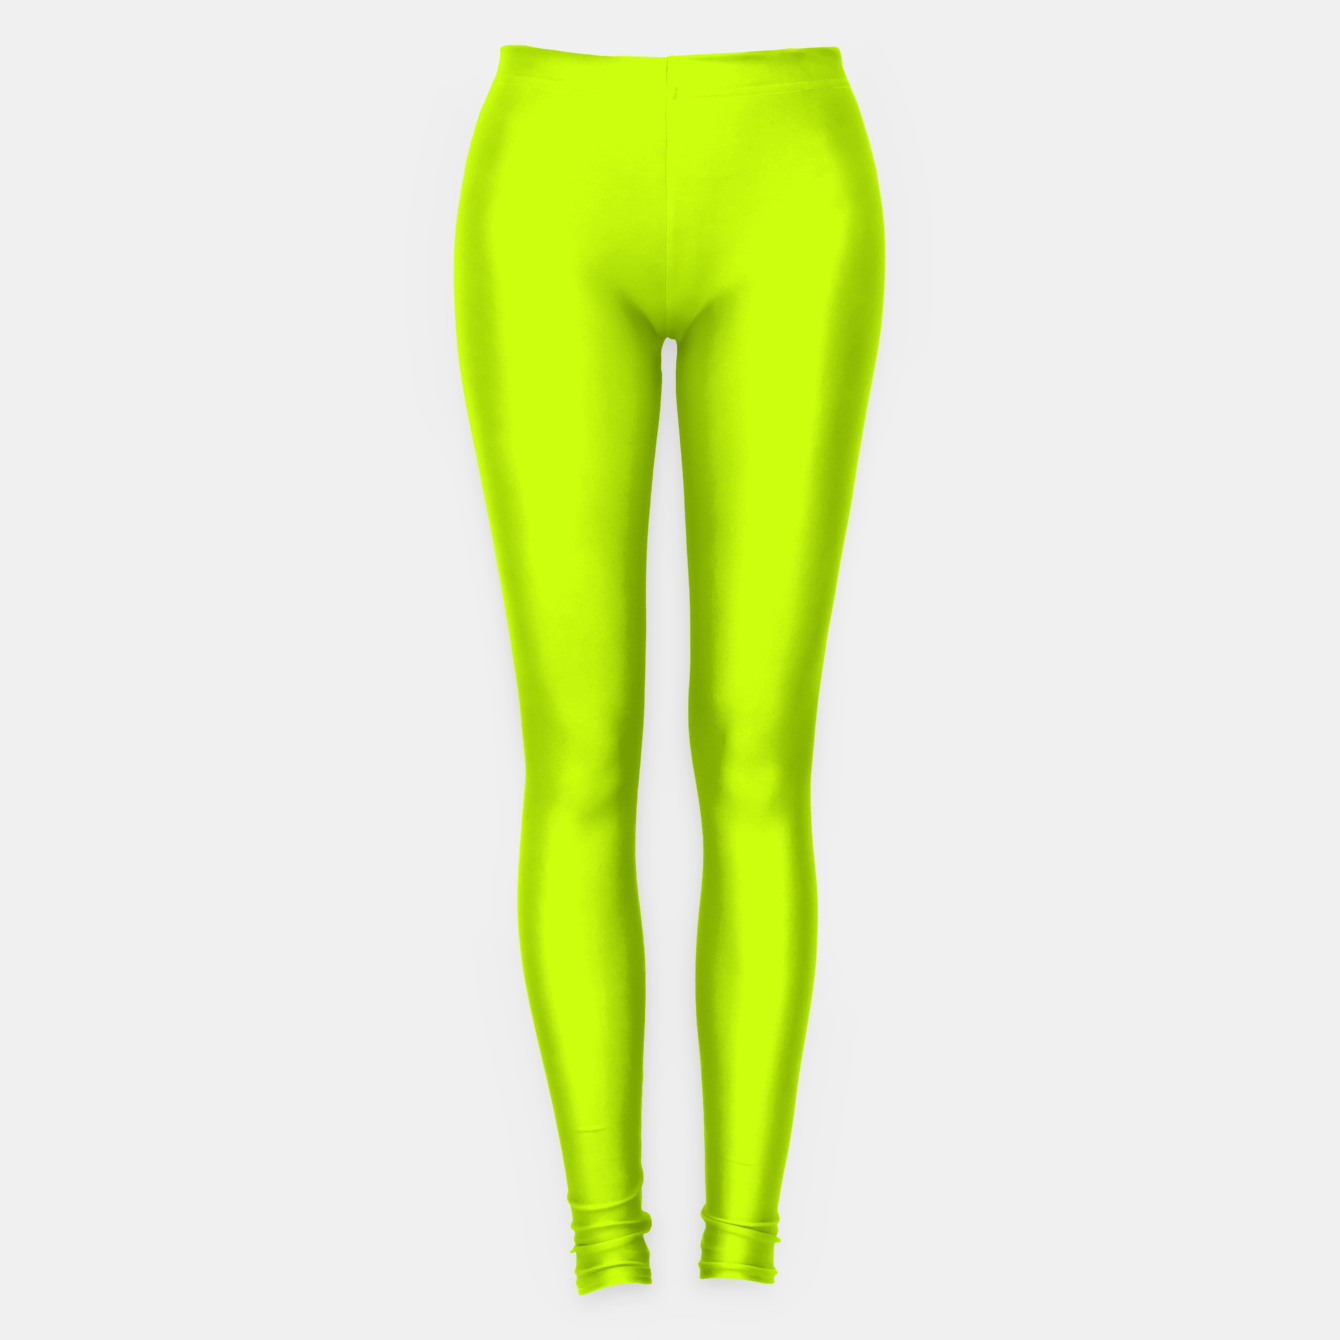 Imagen de Bitter Lime Neon Green Yellow Solid Color Leggings - Live Heroes